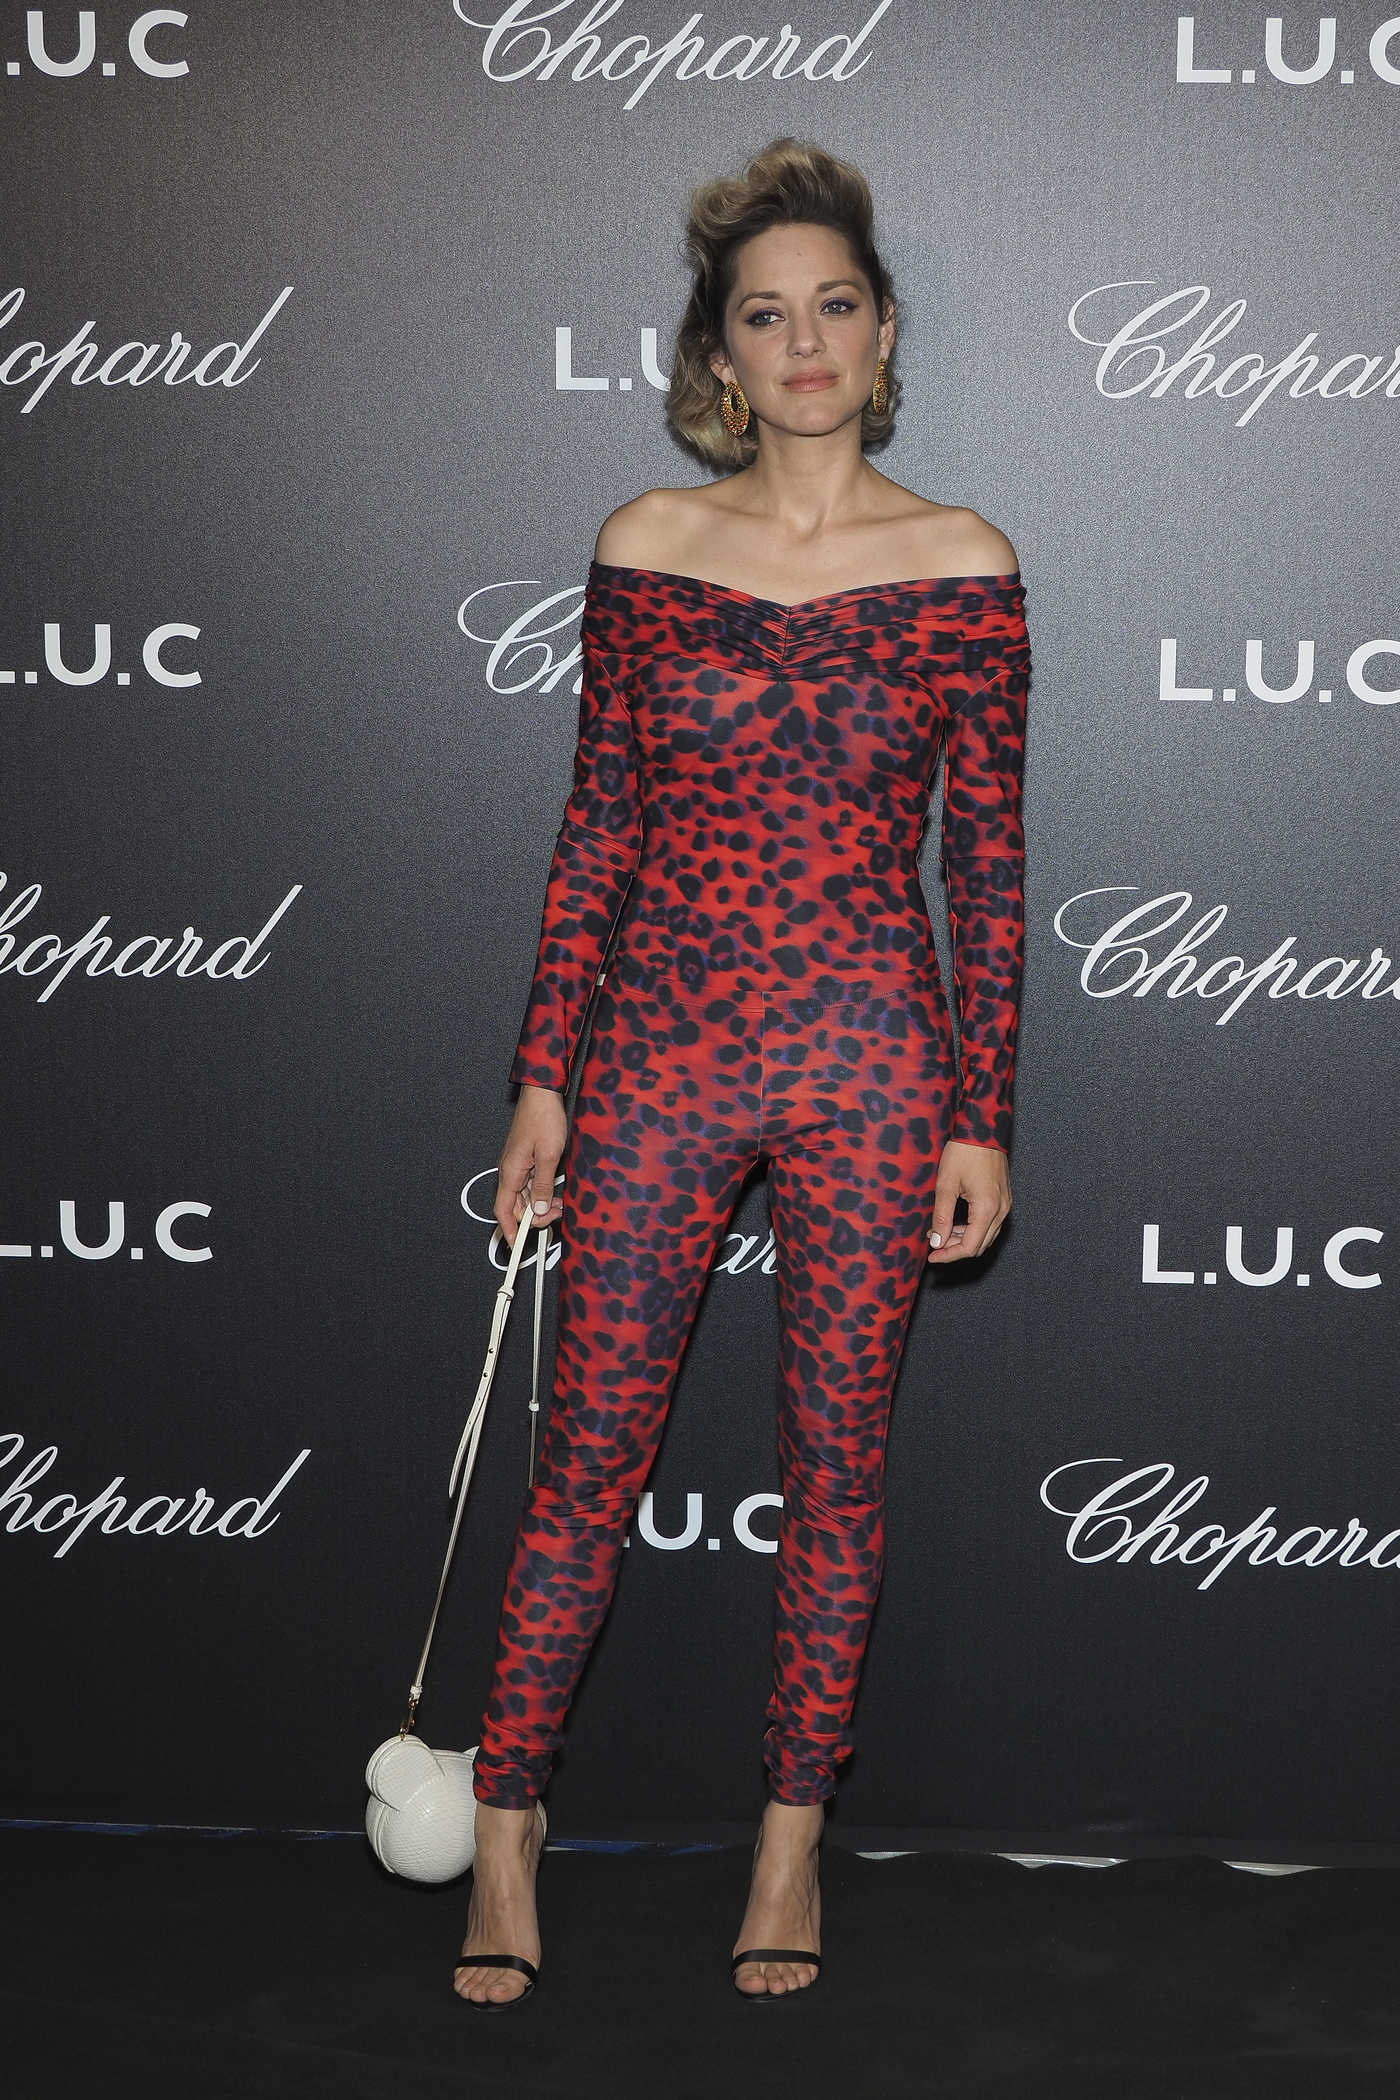 Marion Cotillard Attends the Chopard Gentleman's Night During the 71st Annual Cannes Film Festival in Cannes 05/09/2018